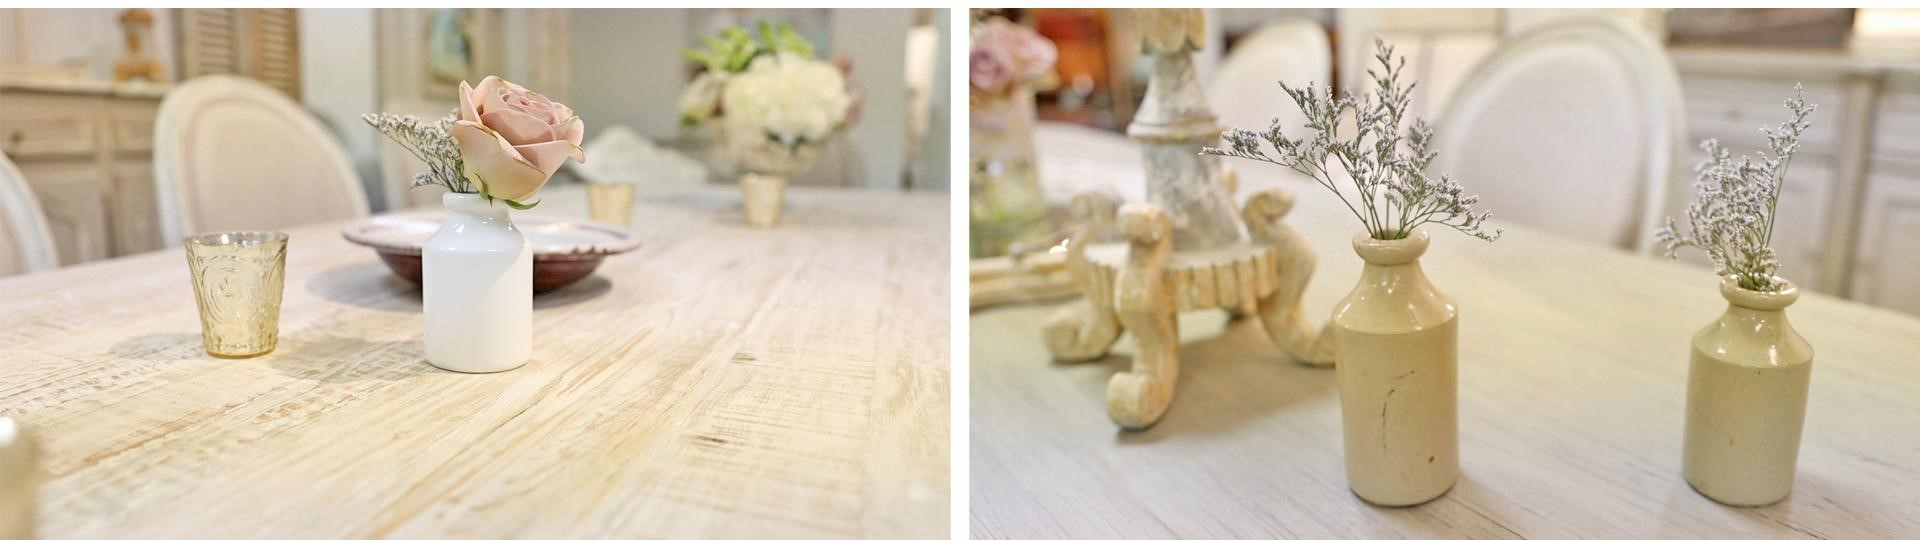 Displaying simple small floral arrangements on a rustic farmhouse dining table